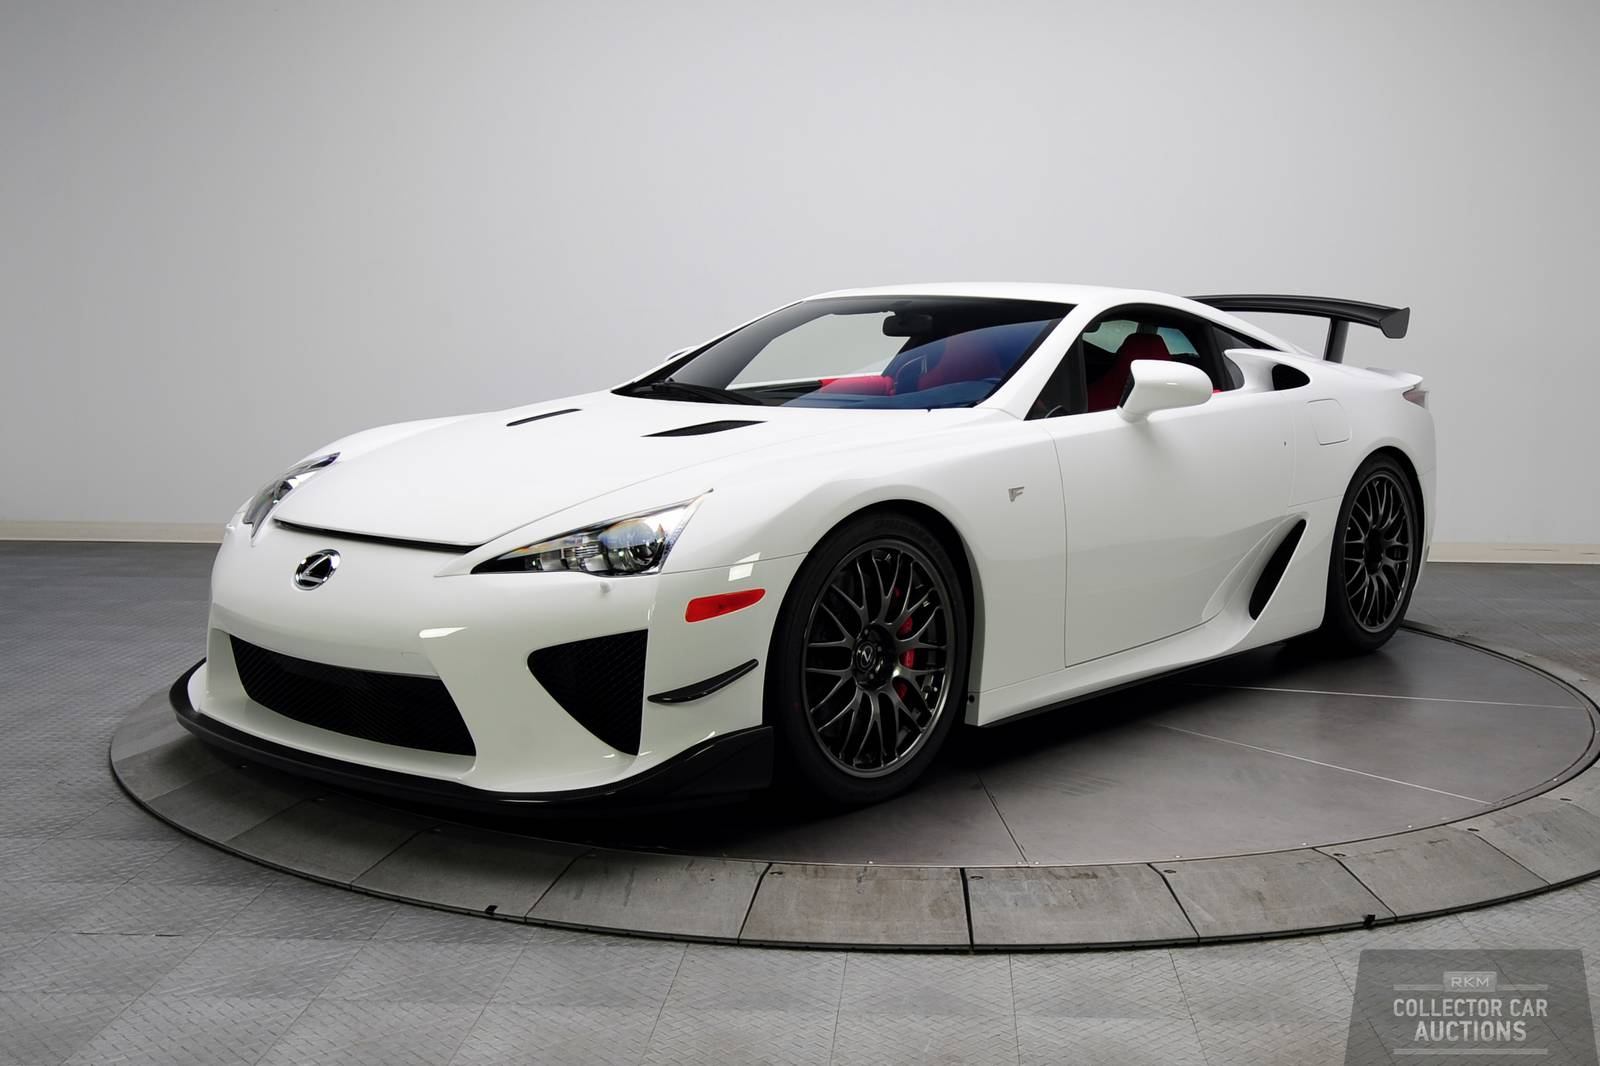 https://storage.googleapis.com/gtspirit/uploads/2013/10/auctions_2012-Lexus-LFA-Nurburgring_1644916.jpg